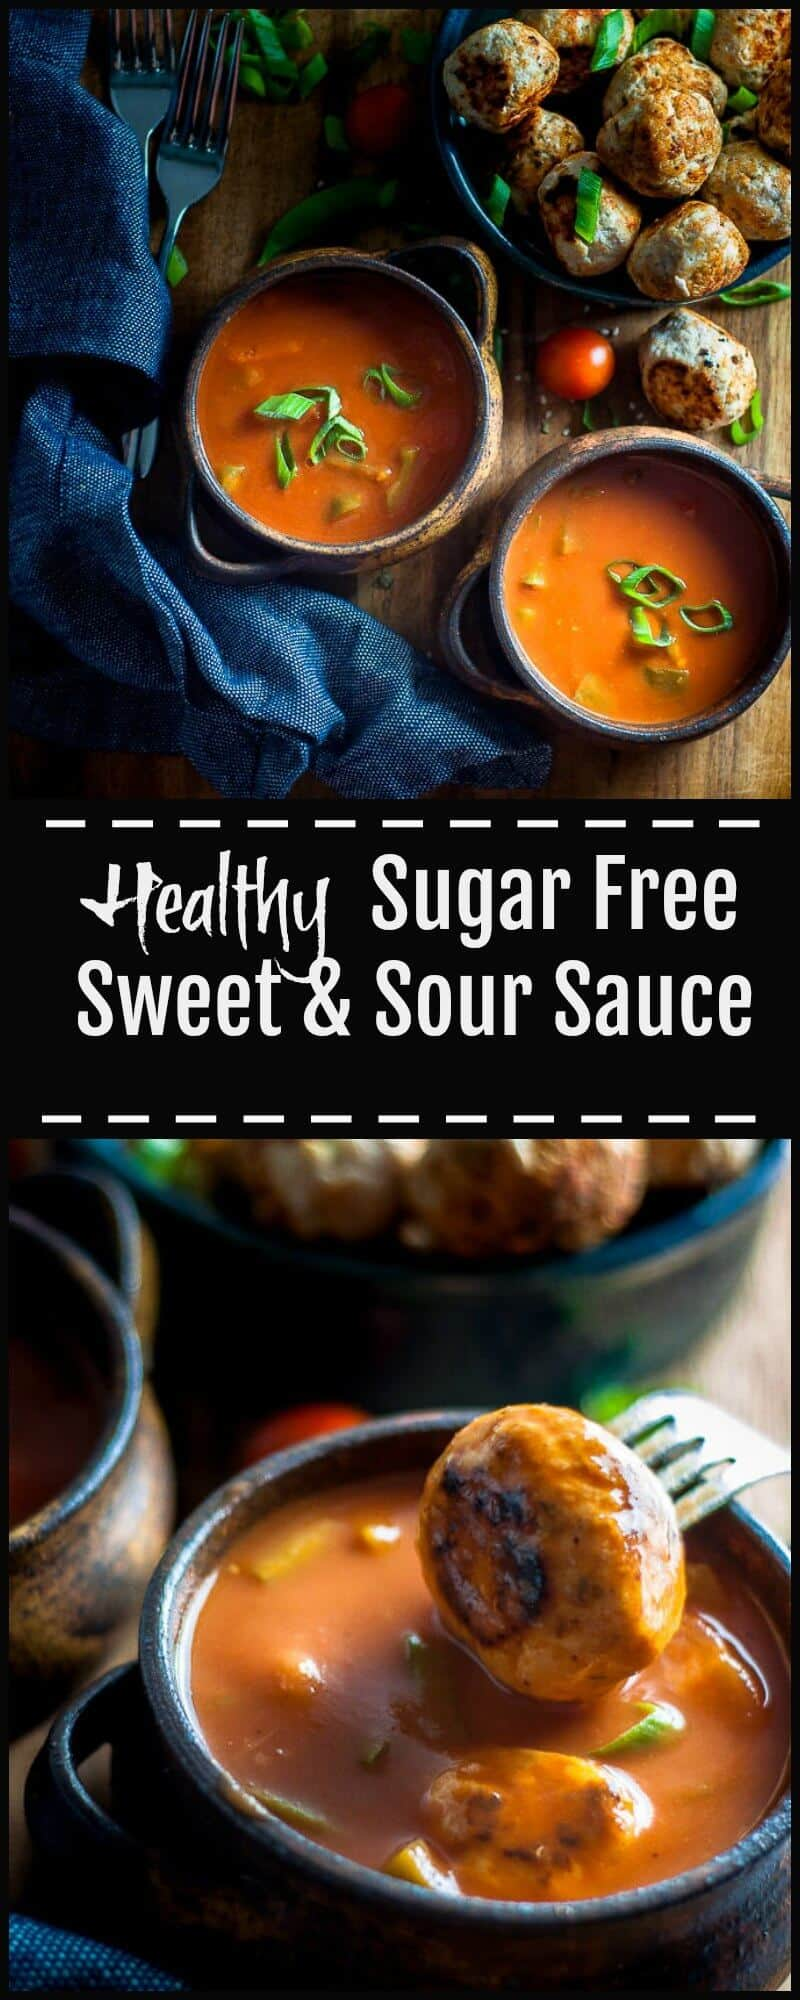 This Sugar Free Sweet and Sour Sauce is a healthy and versatile alternative to store bought or take out sauces.  It has a punchy tang from the pineapple, is thick and glossy and a rich vibrant shade of red all put together in around 10 minutes.